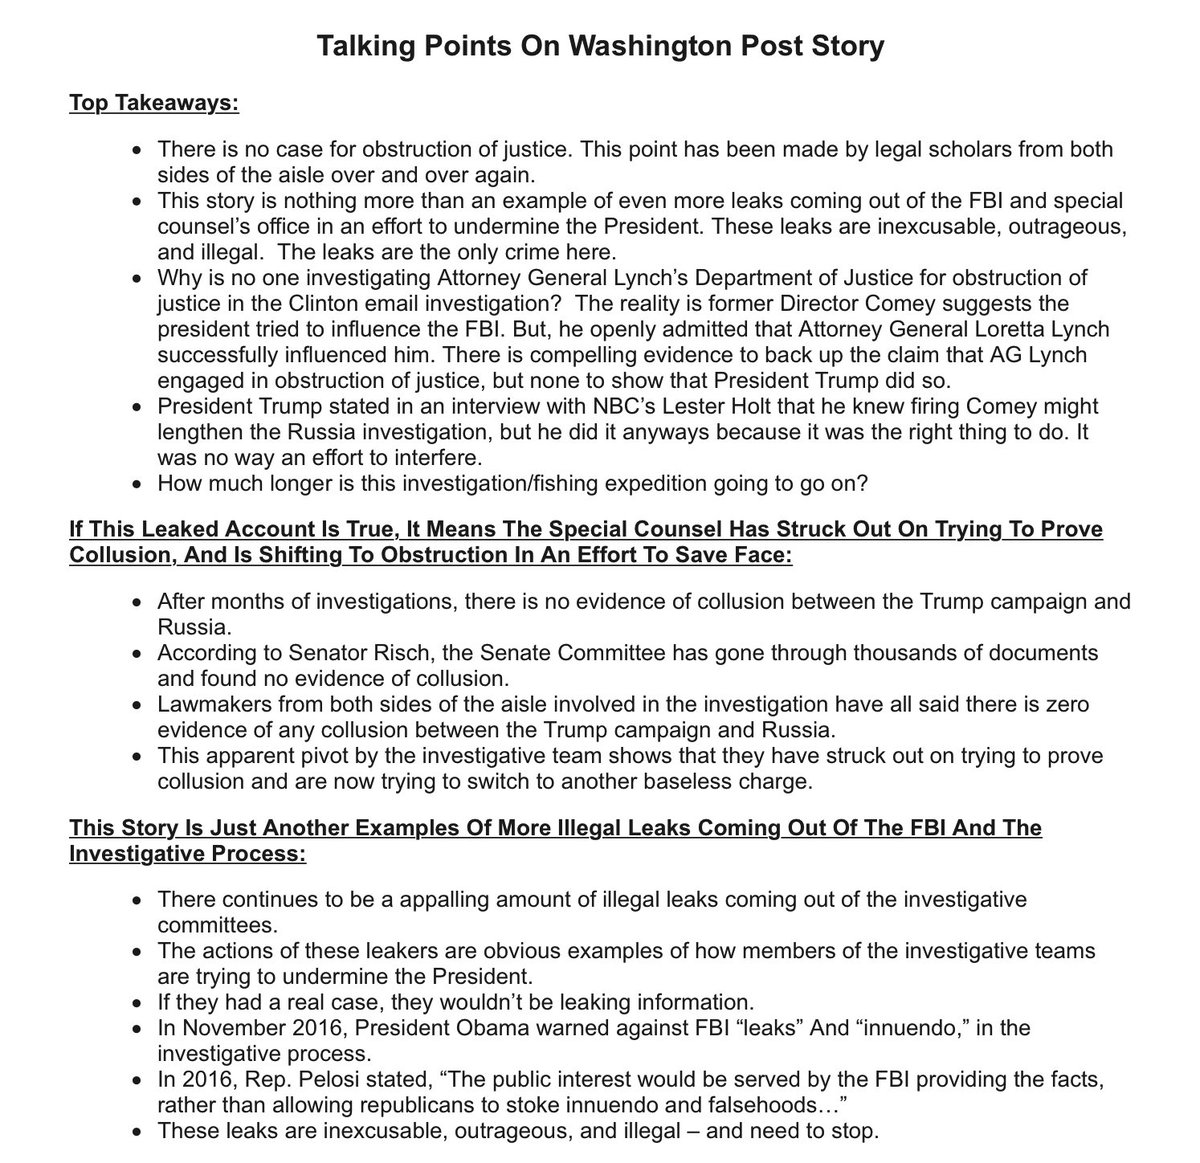 A source sent me RNC/Trump talking points for Repubs seeking to discredit tonight's WaPo scoop on Mueller investigating Trump obstruction —>